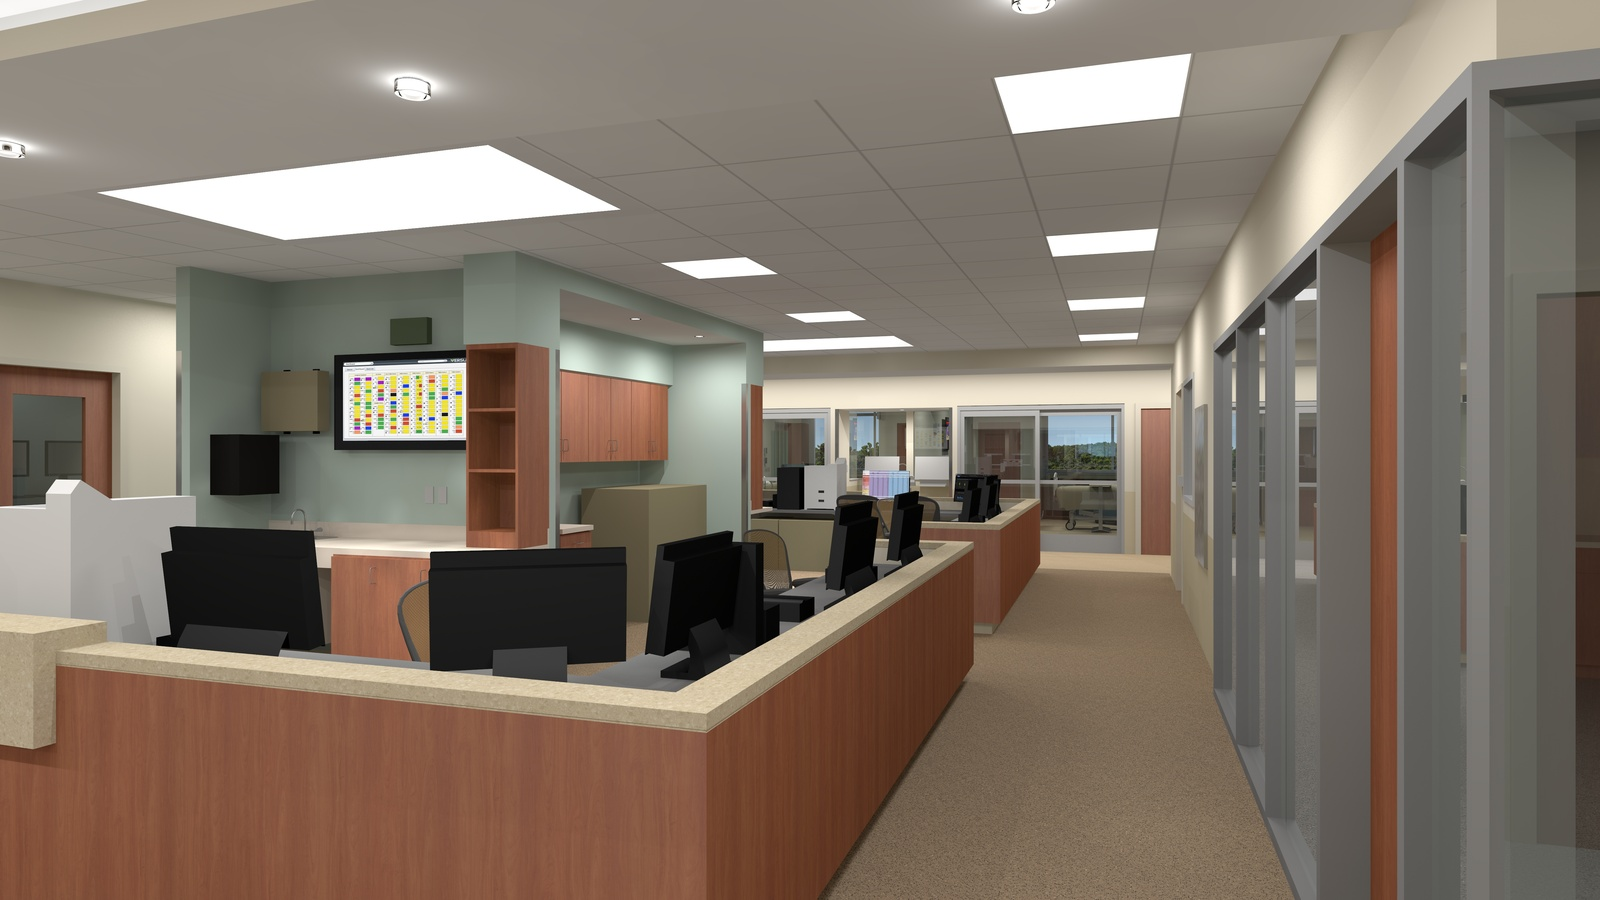 South Shore MA   South Shore Hospital Expansion And Renovation. Still From  Animation   ICU Staff Area. Location: South Shore, MA Project Designer: ...